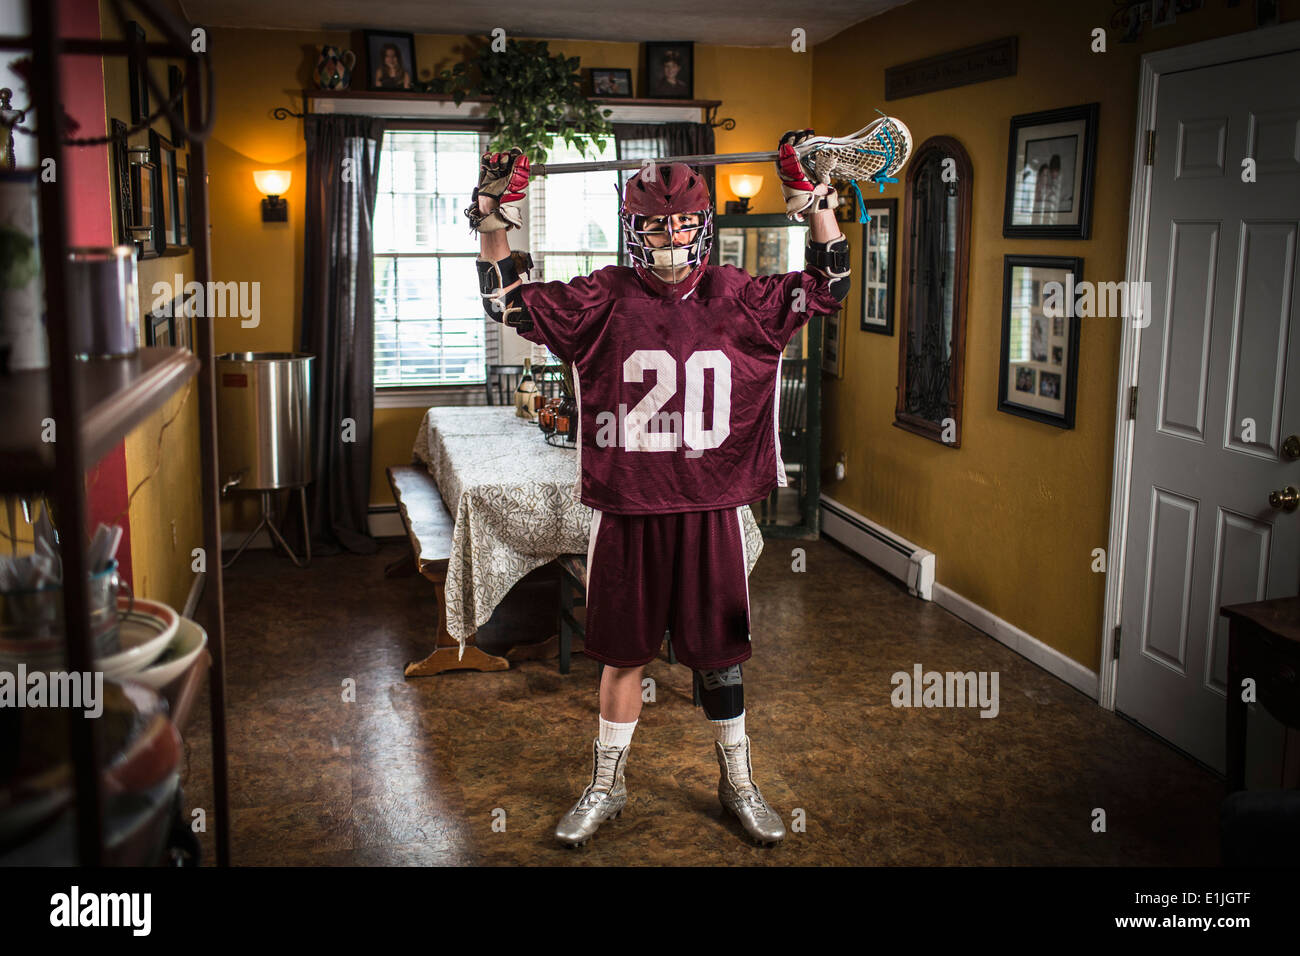 Teenage boy wearing lacrosse uniform, standing in dining room Stock Photo